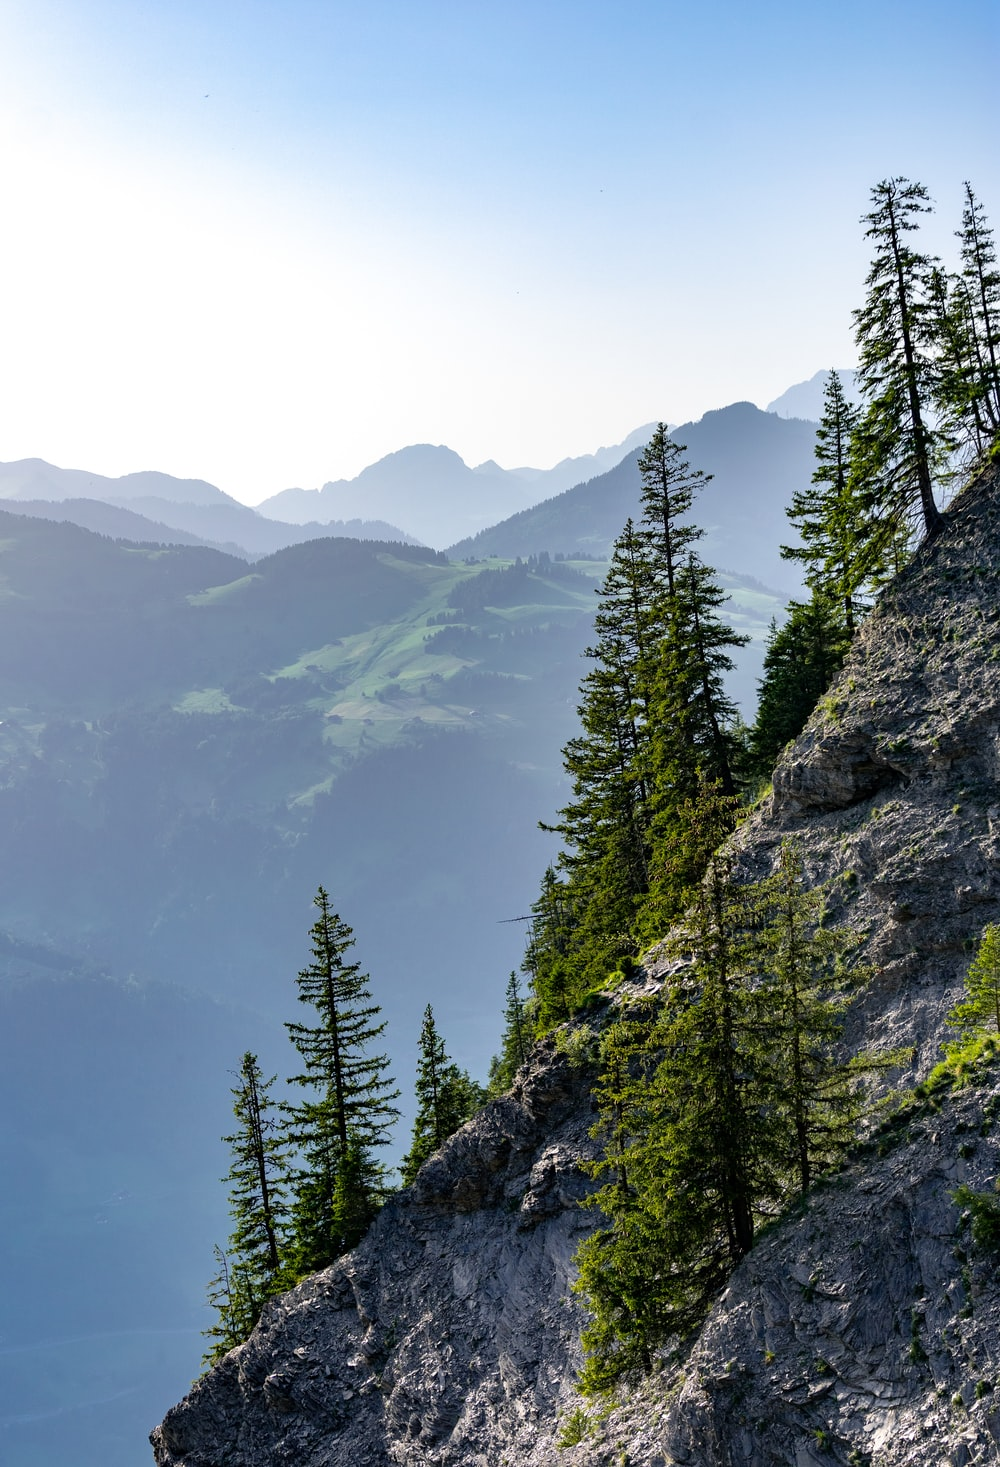 landscape photo of trees at a mountainside